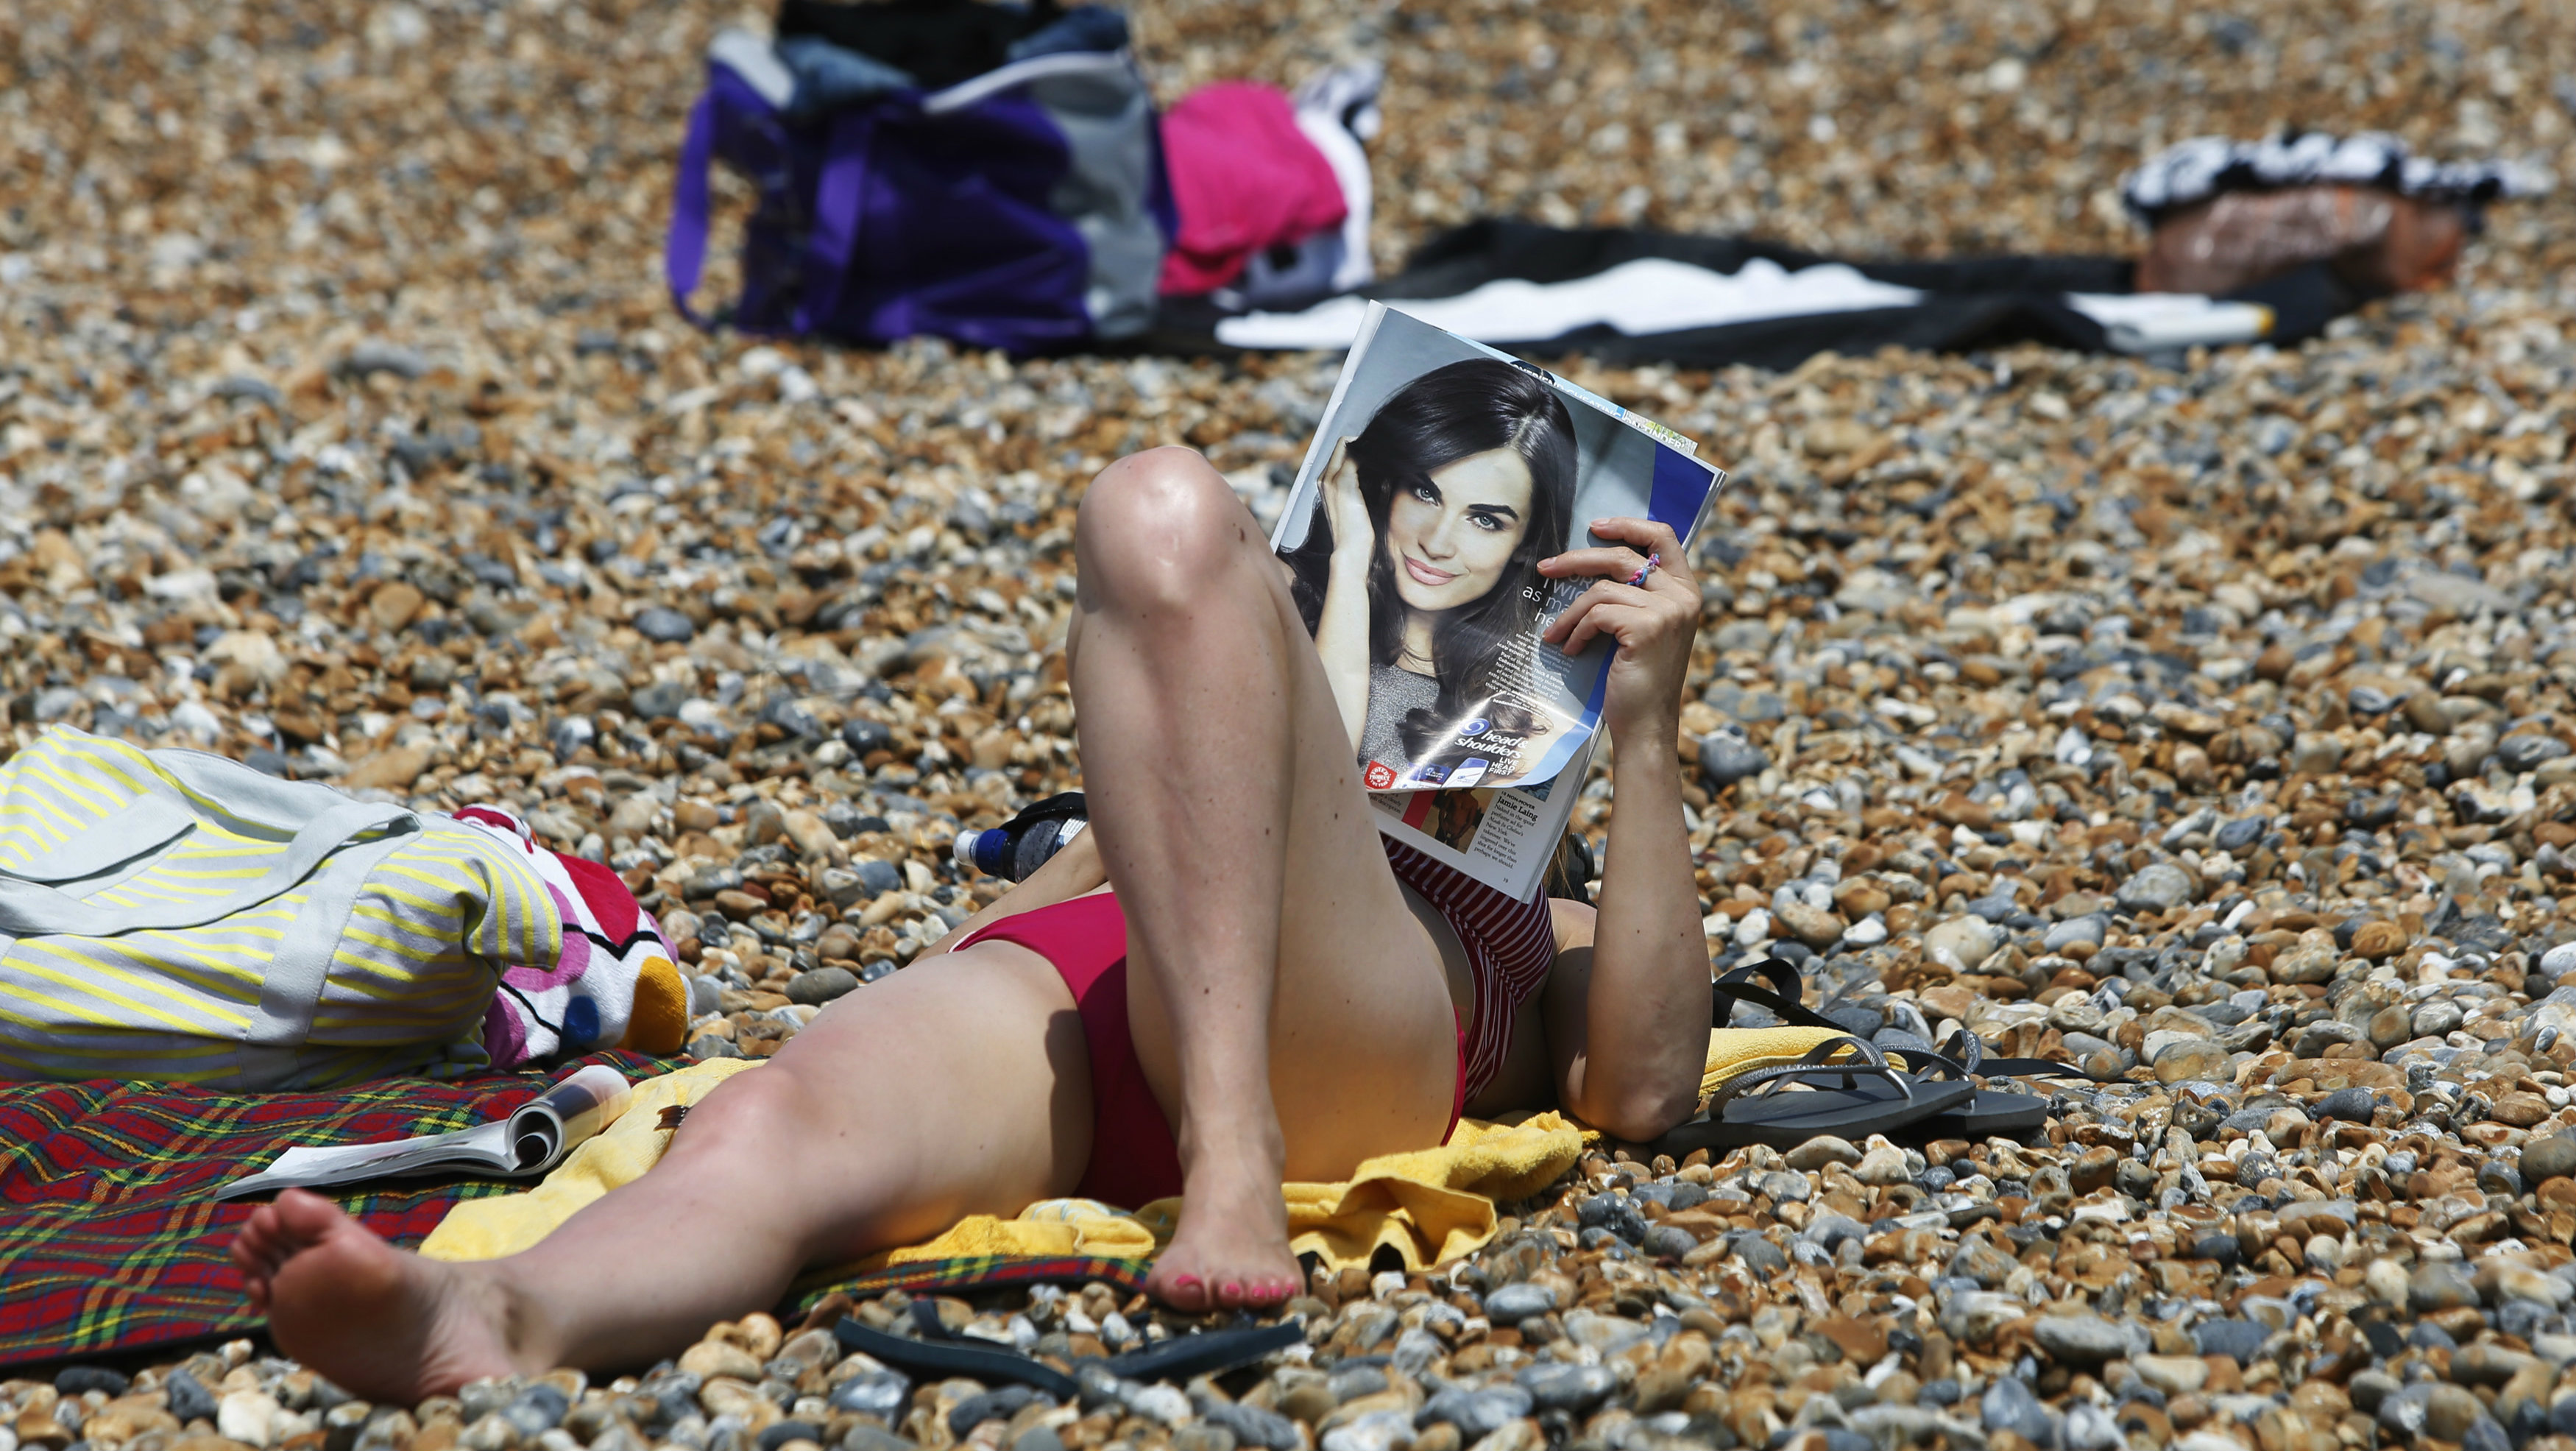 A woman reads a magazine as she sunbathes during the hot summer weather on Brighton beach in southern England July 23, 2014. REUTERS/Luke MacGregor (BRITAIN - Tags: ENVIRONMENT SOCIETY)